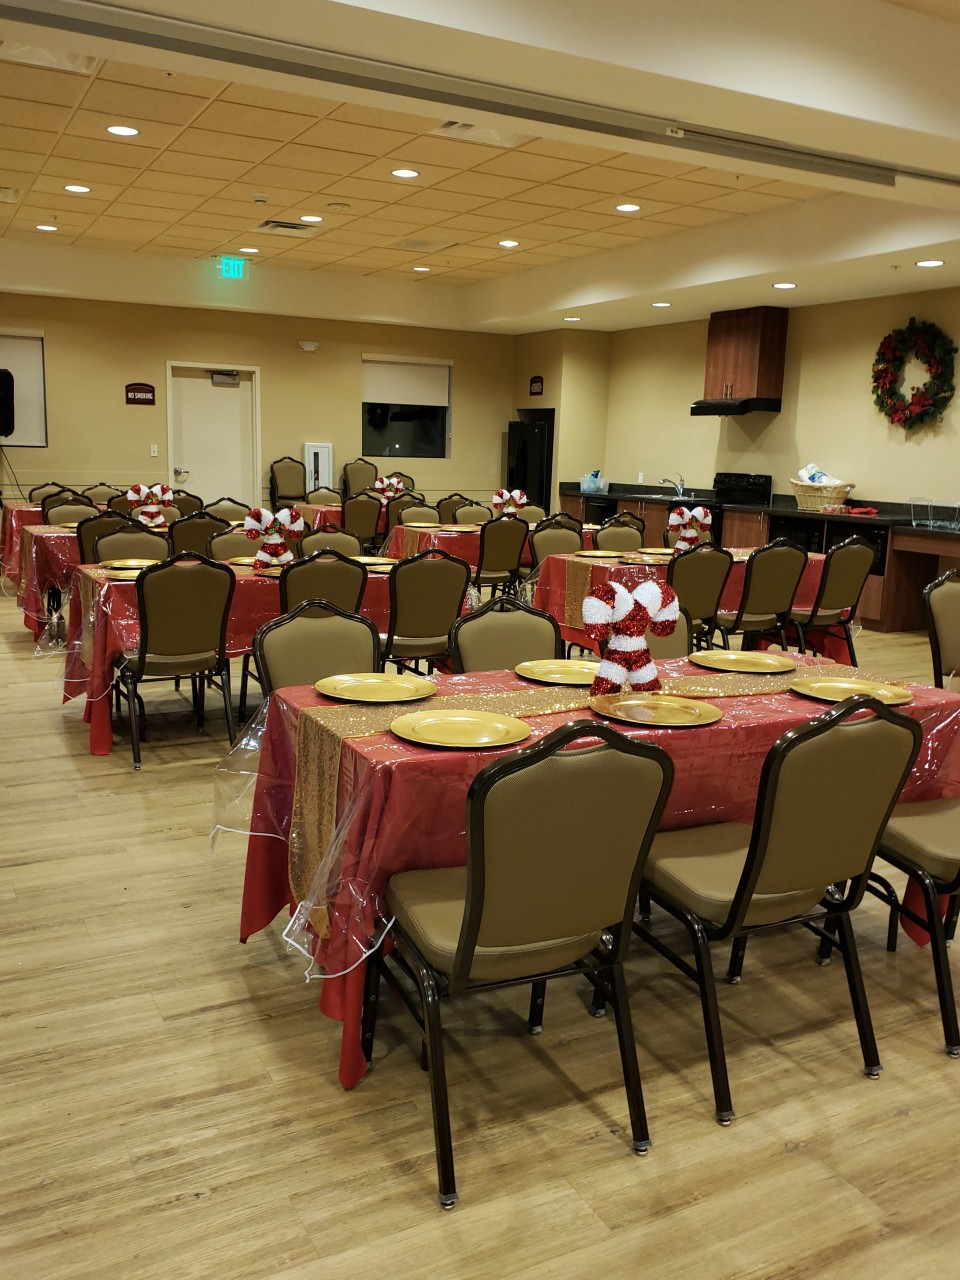 It's beginning to look alot like Christmas here at Pala Casino RV Christmas Rally as we prepare for all the Rainbow RV revelers.........